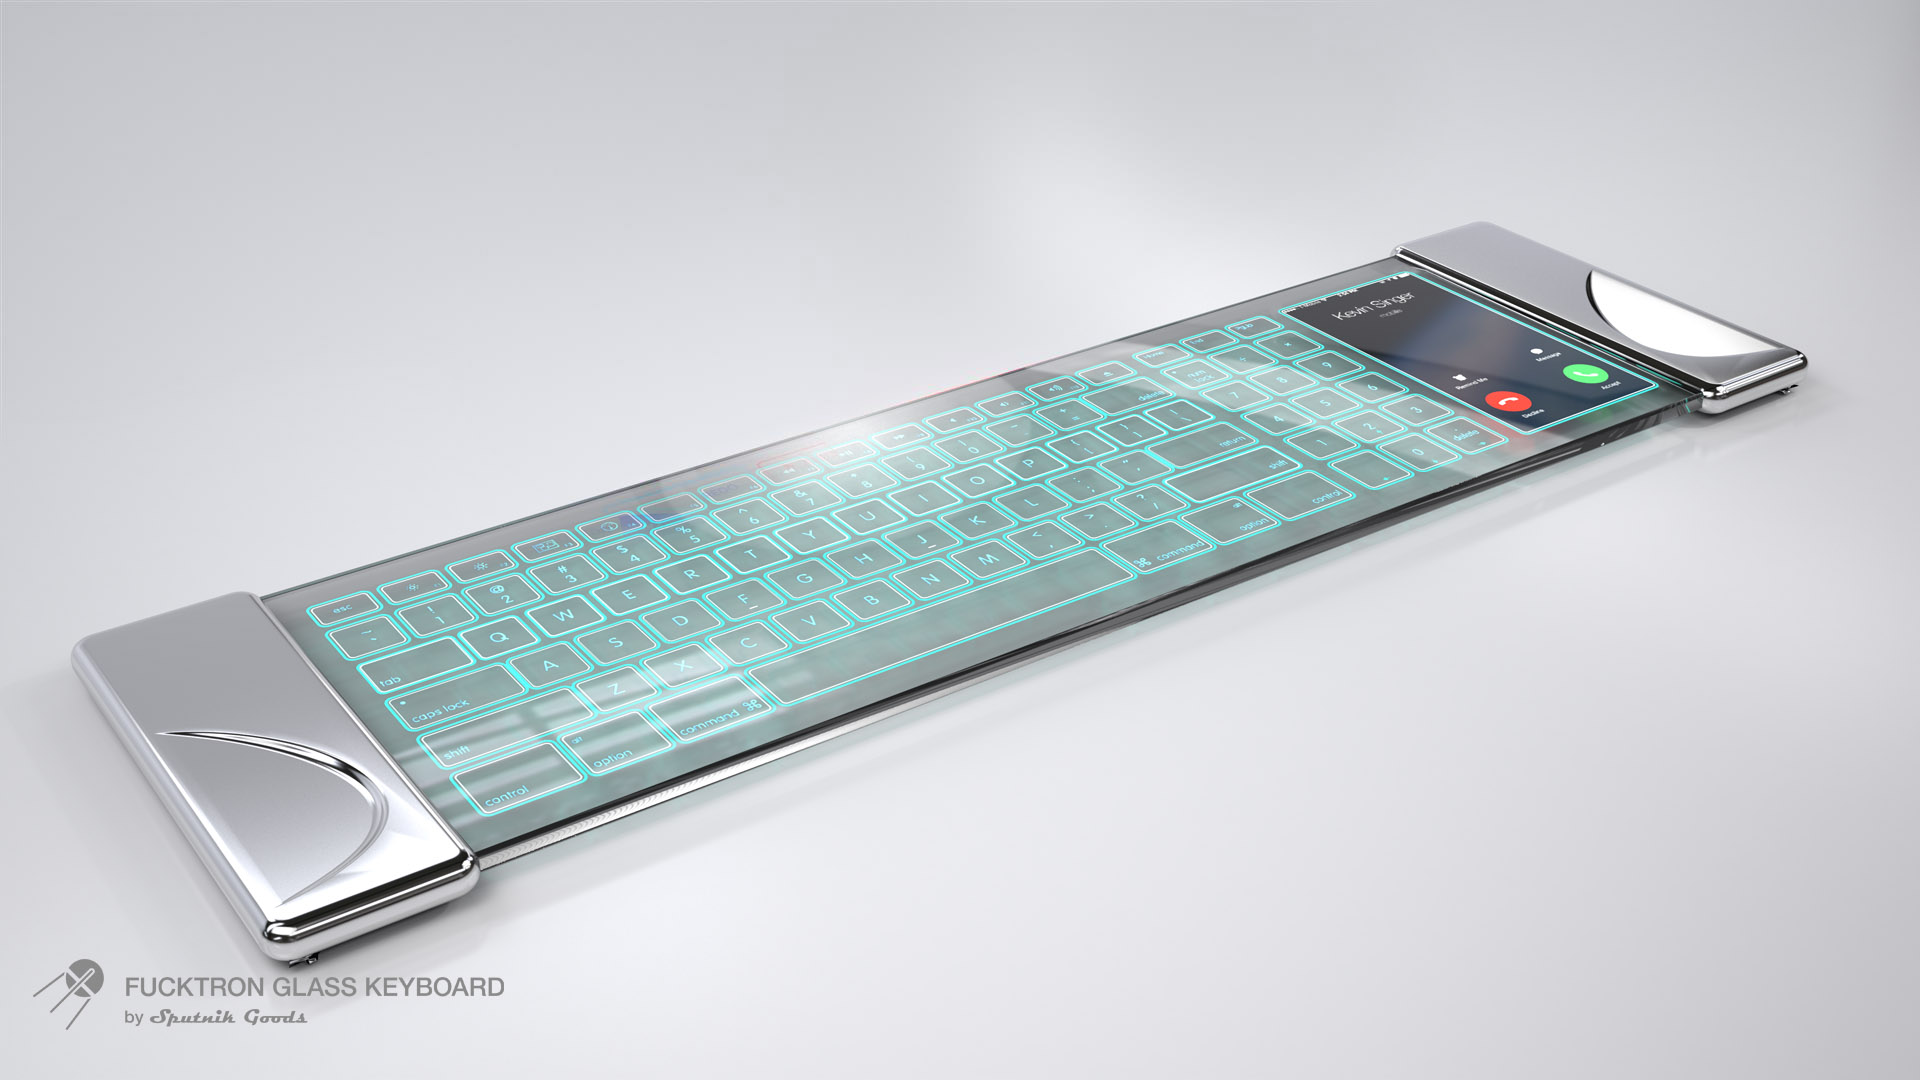 Fucktron Glass Keyboard - Portfolio of Sputnik Goods Inc